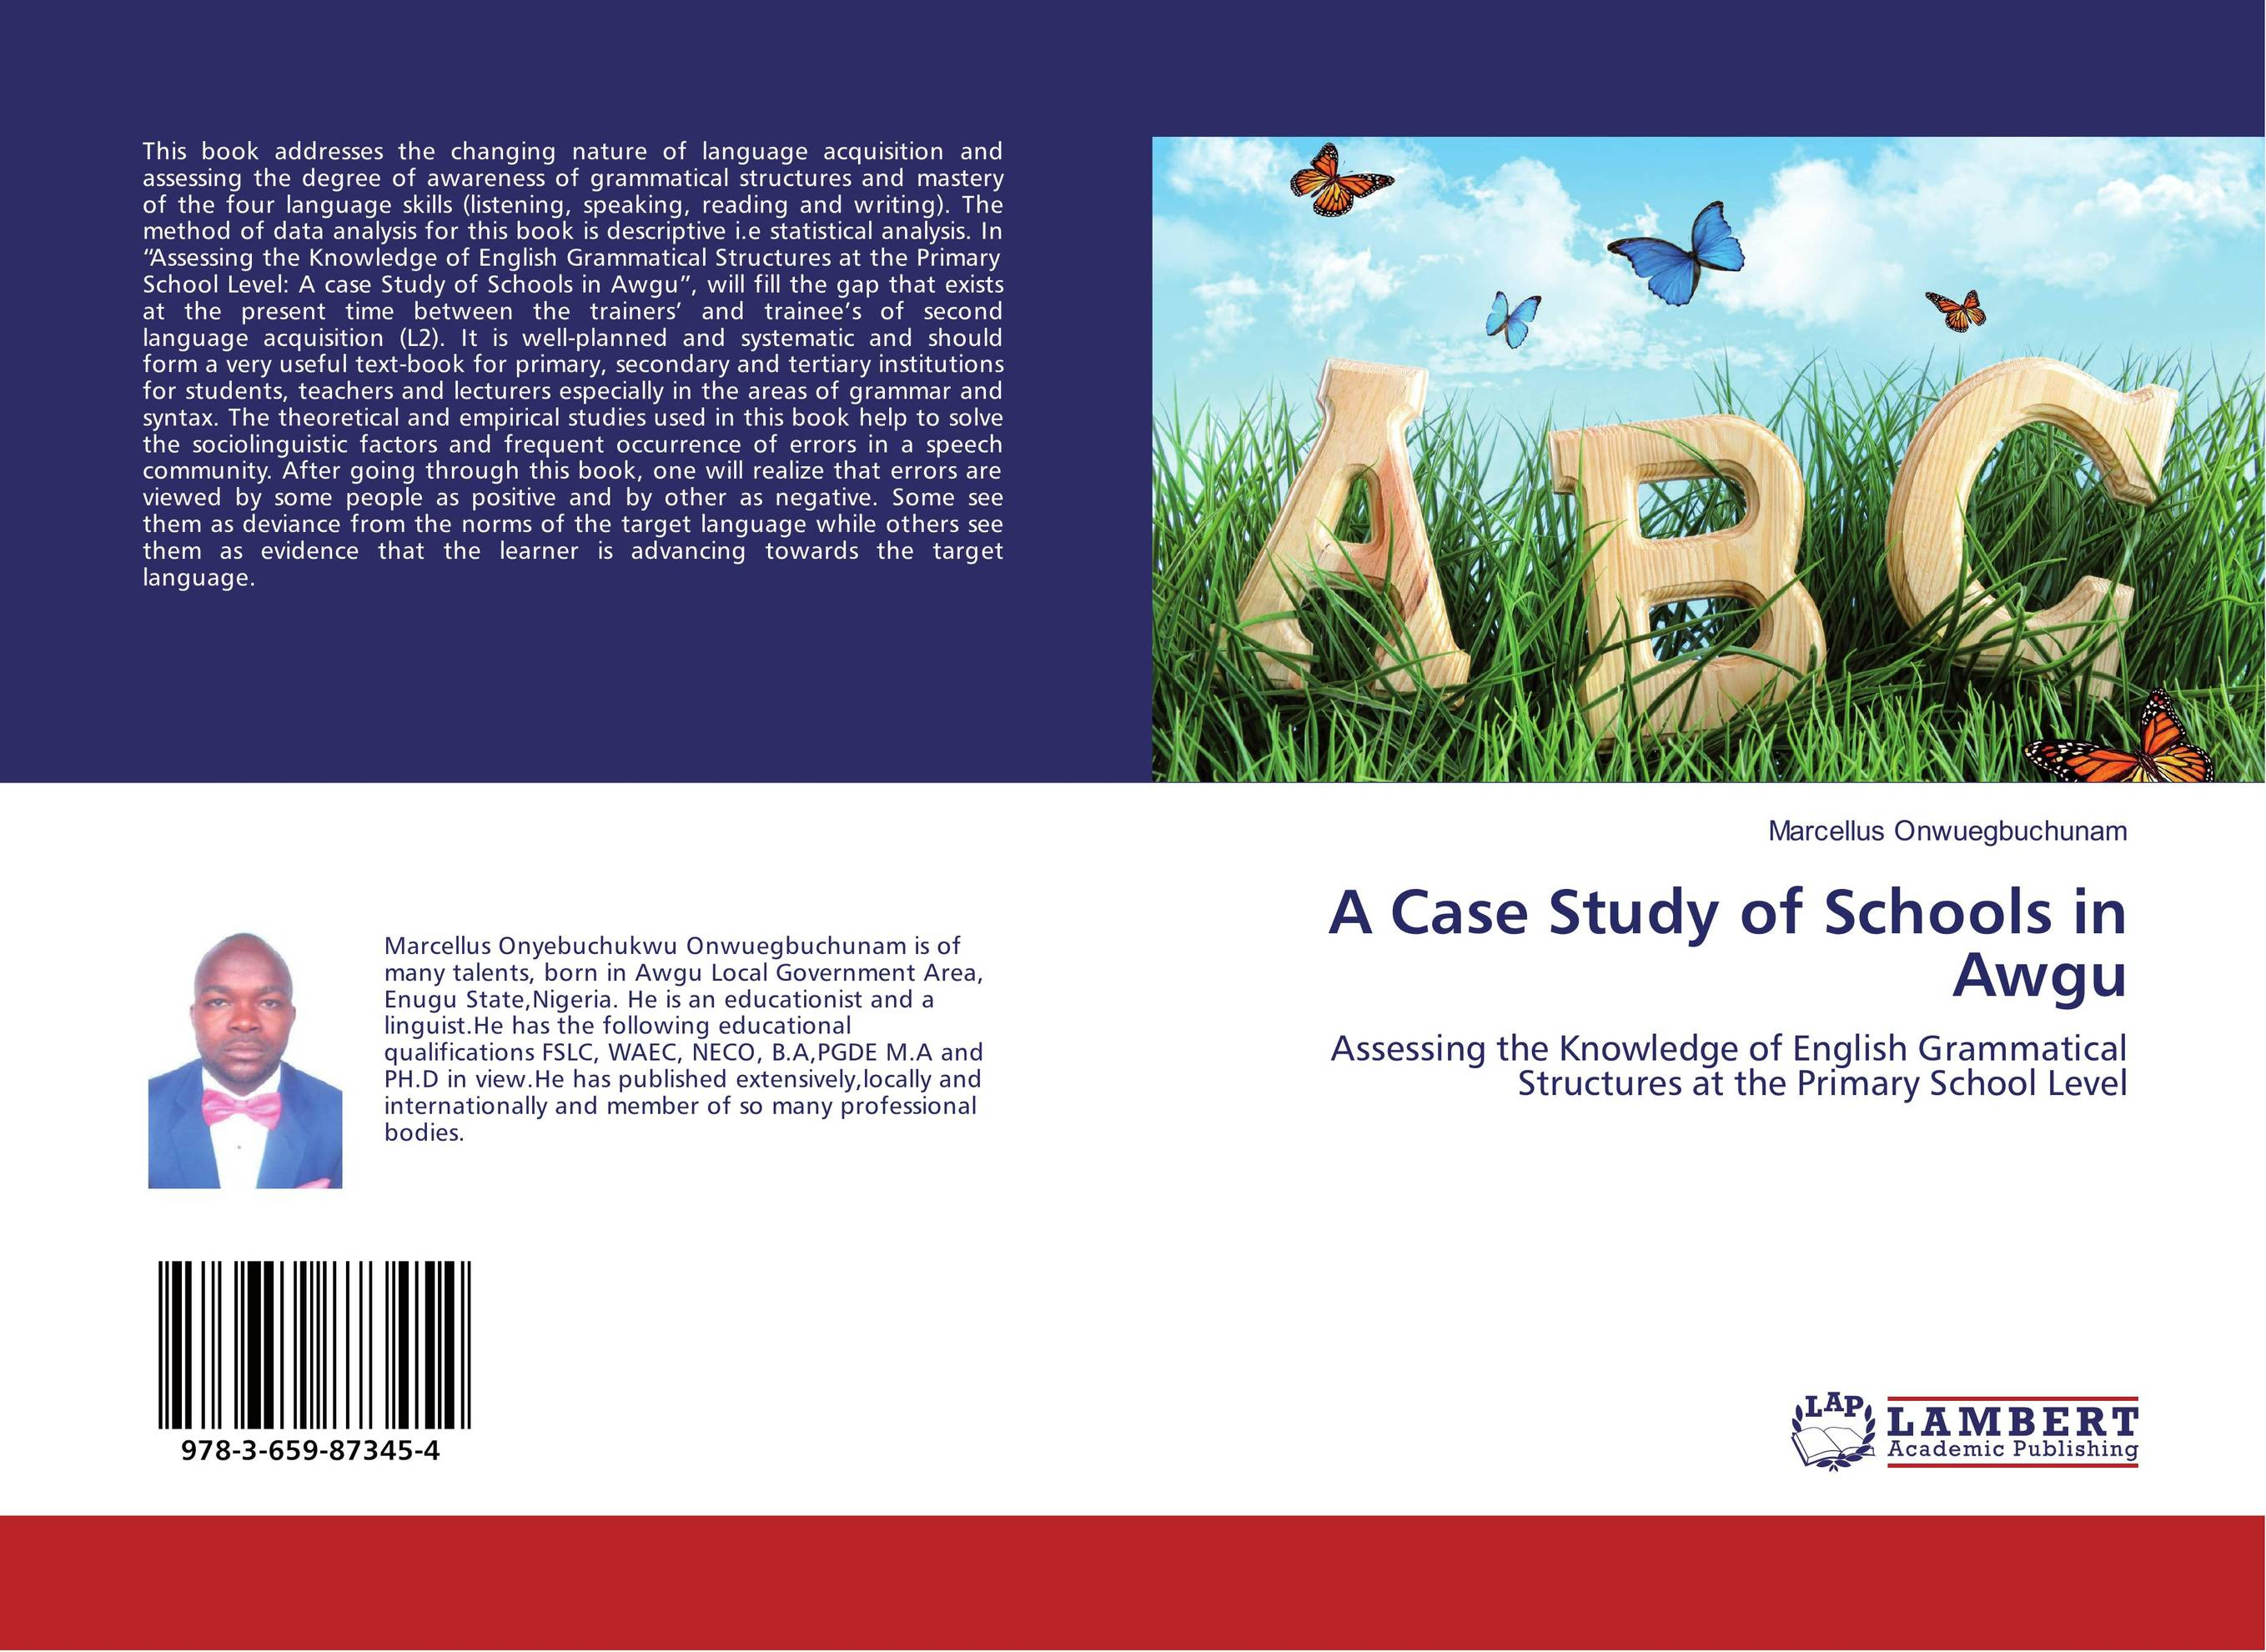 A Case Study of Schools in Awgu